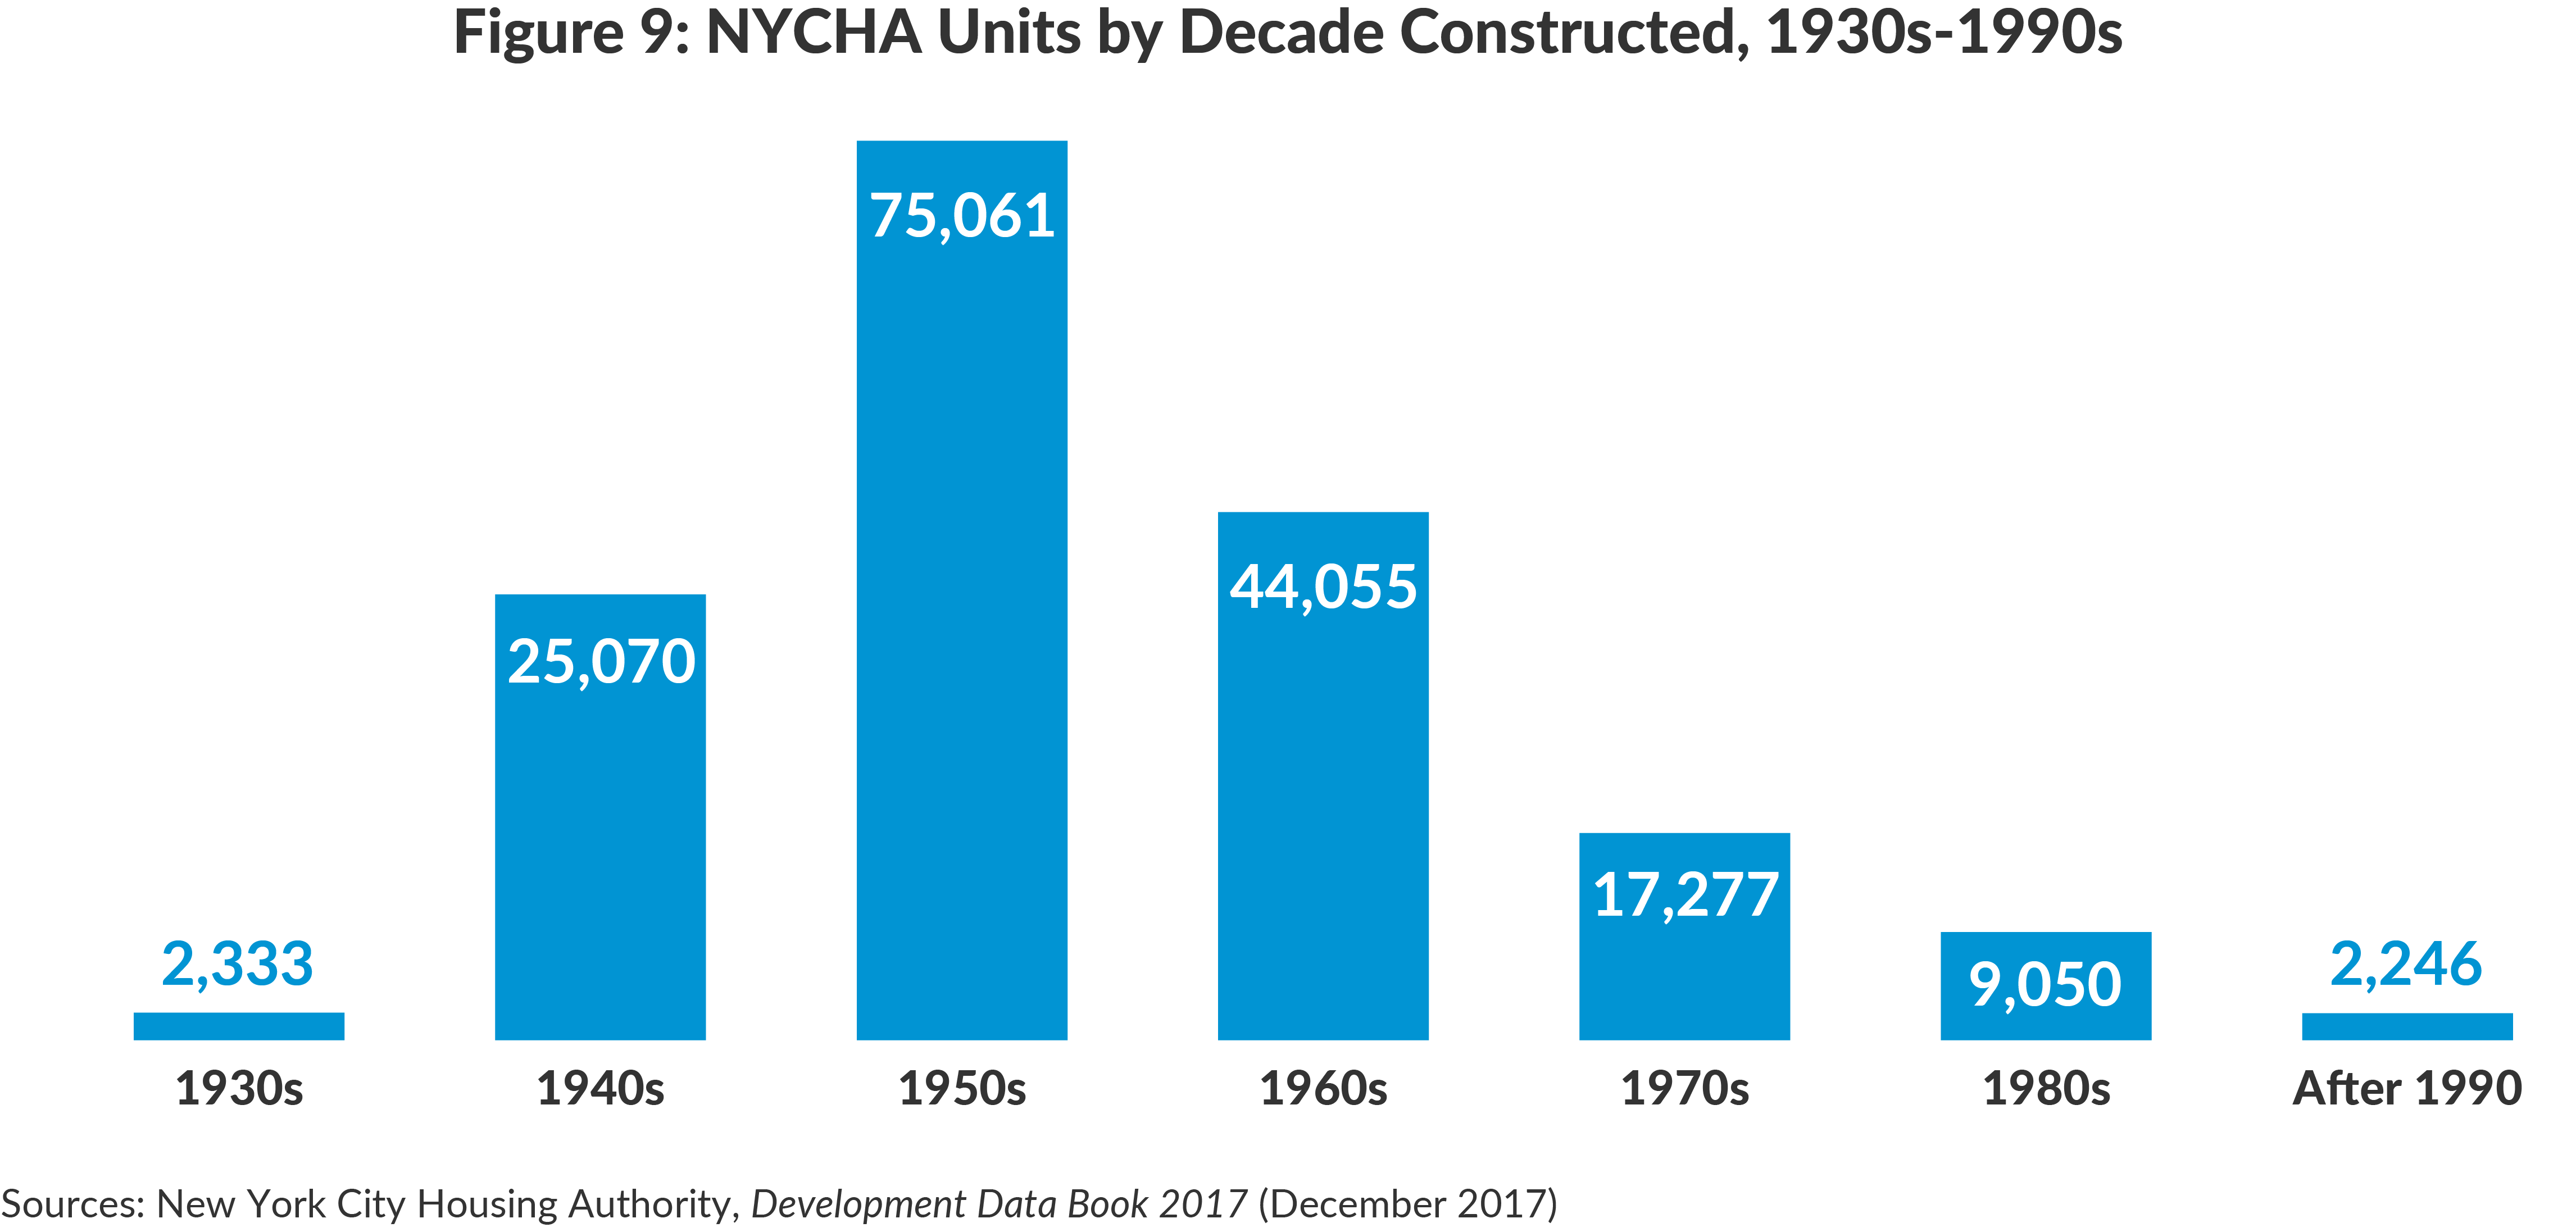 Figure 9: NYCHA Units by Decade Constructed, 1930s-1990s